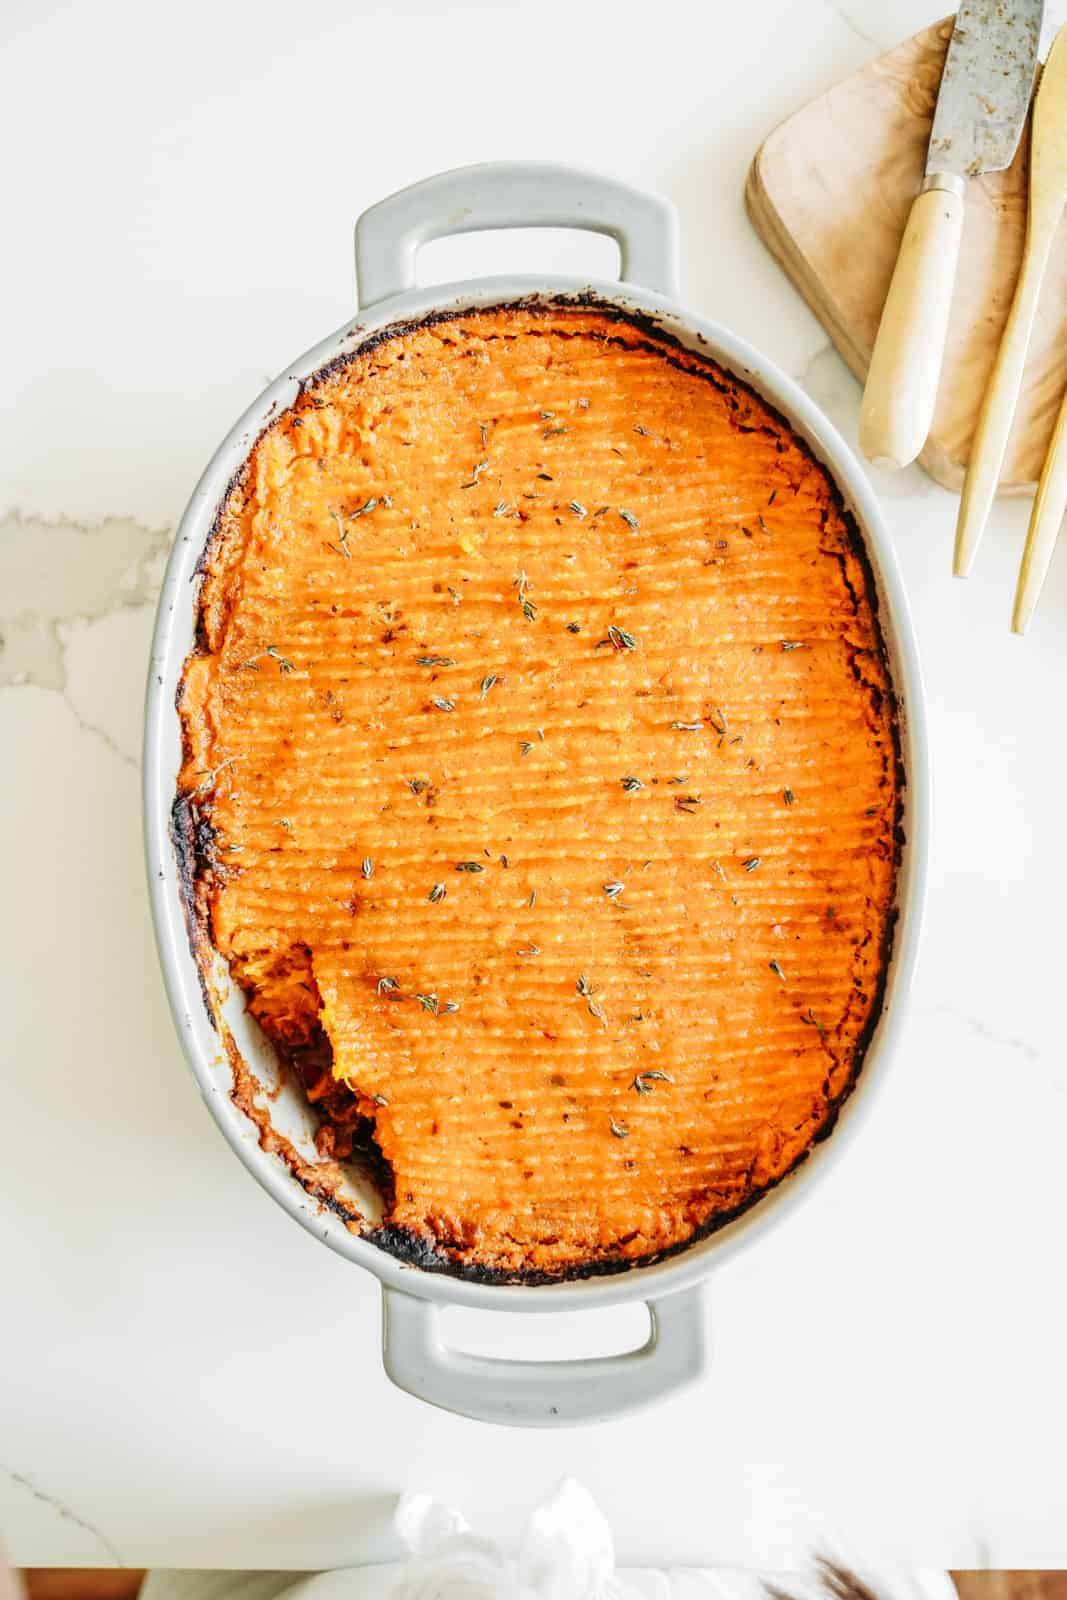 A casserole dish filled with yummy Shepherd's Pie with a sweet potato topping.